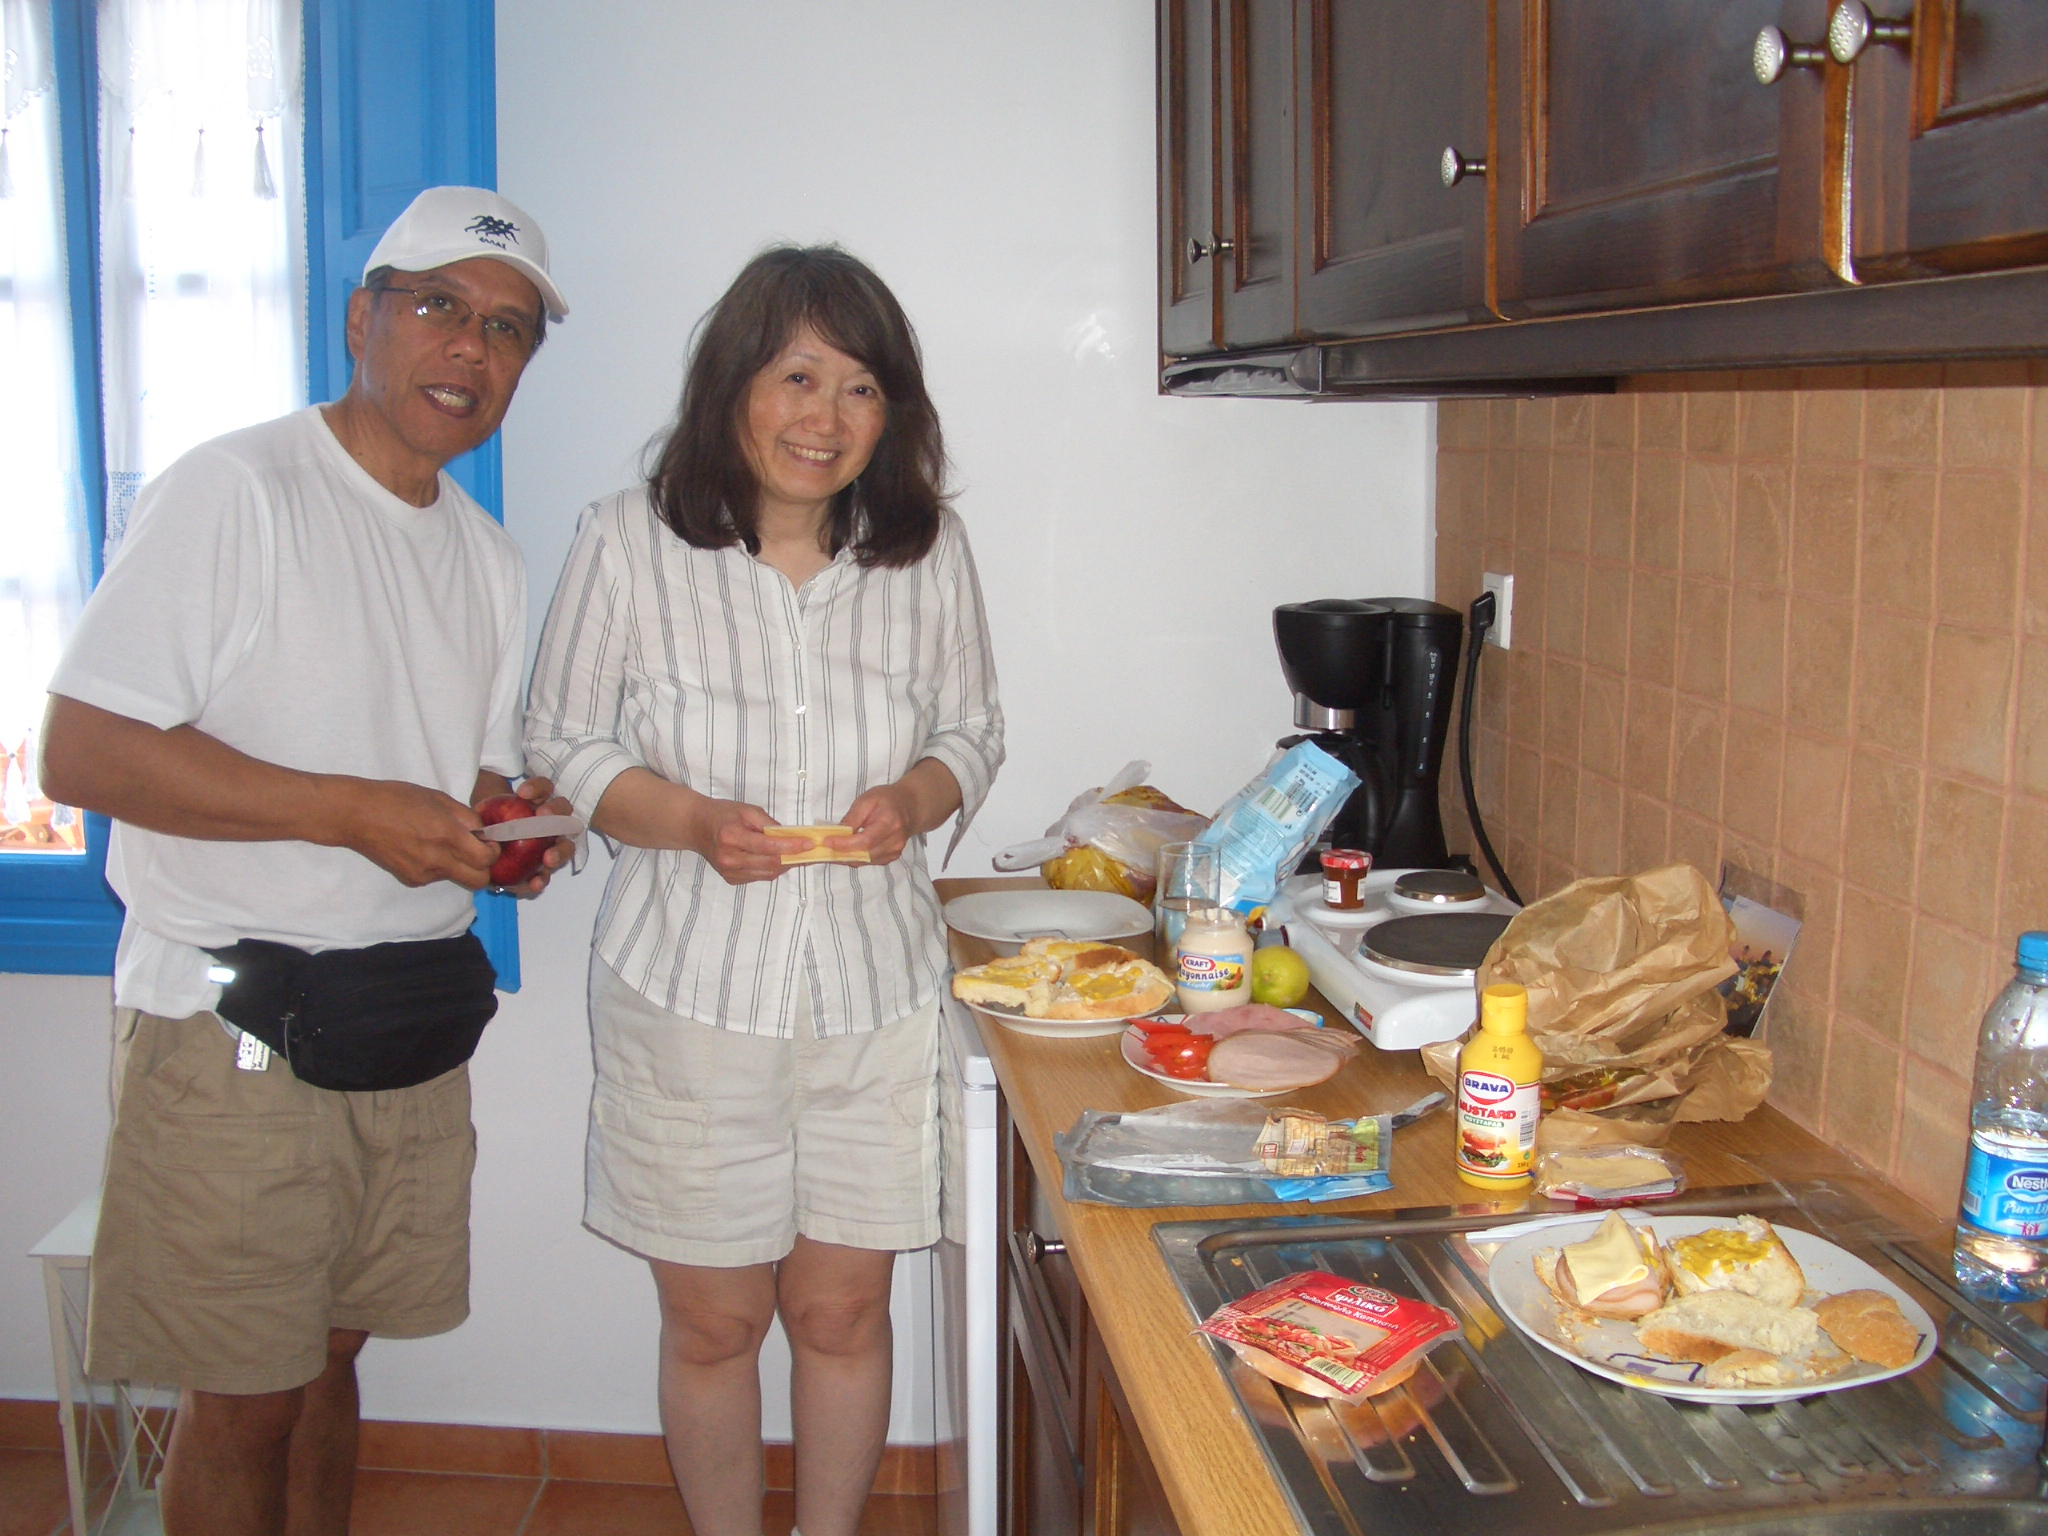 mom and dad making lunch